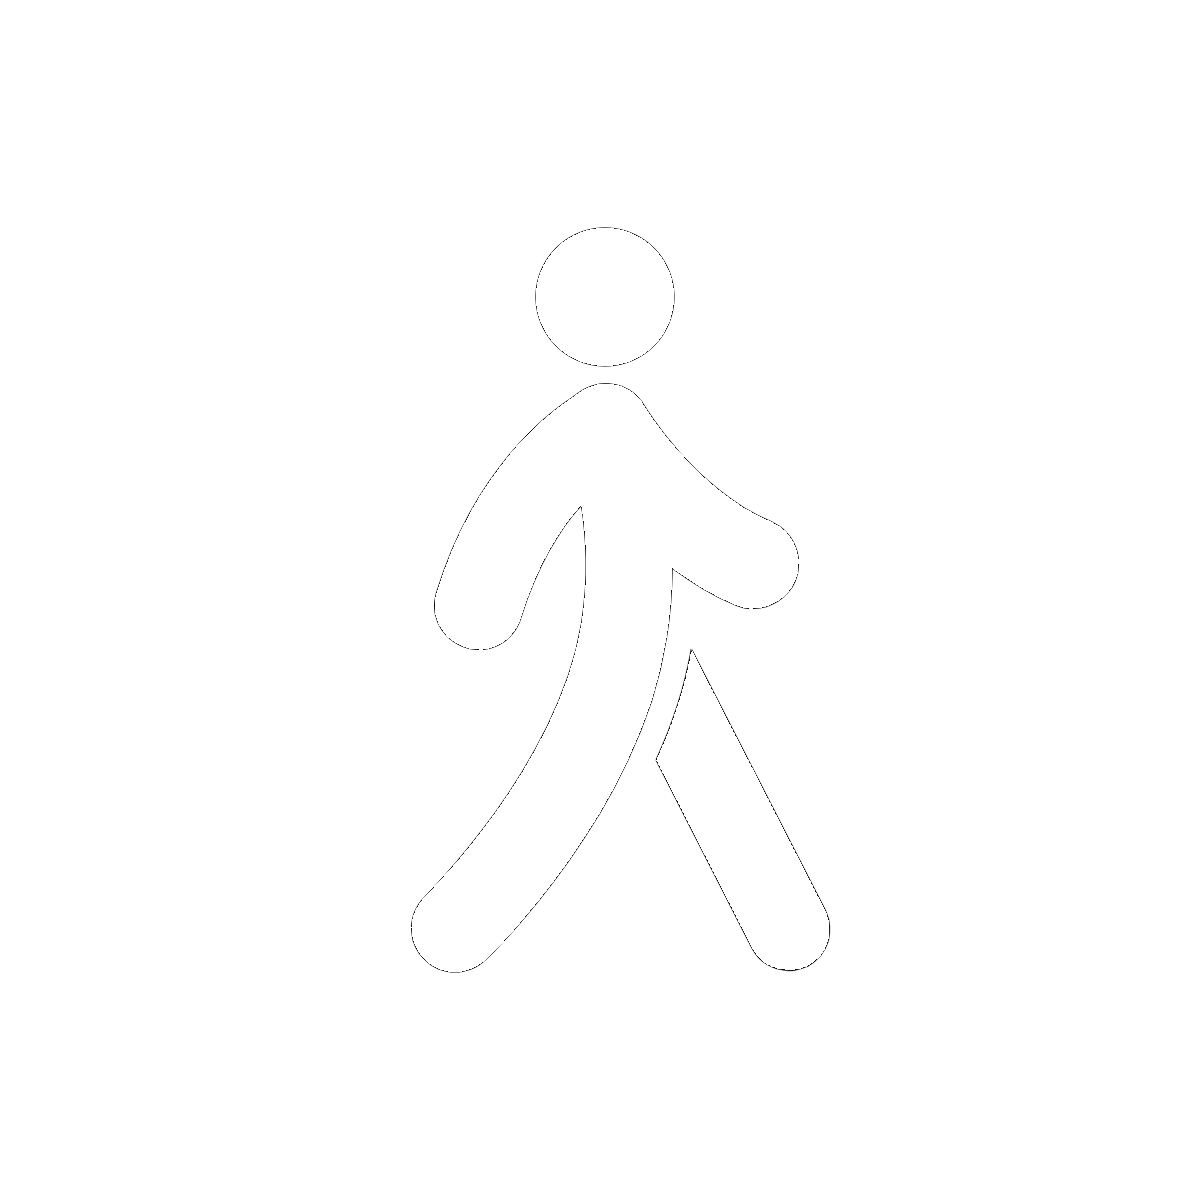 Symbol Walking Away